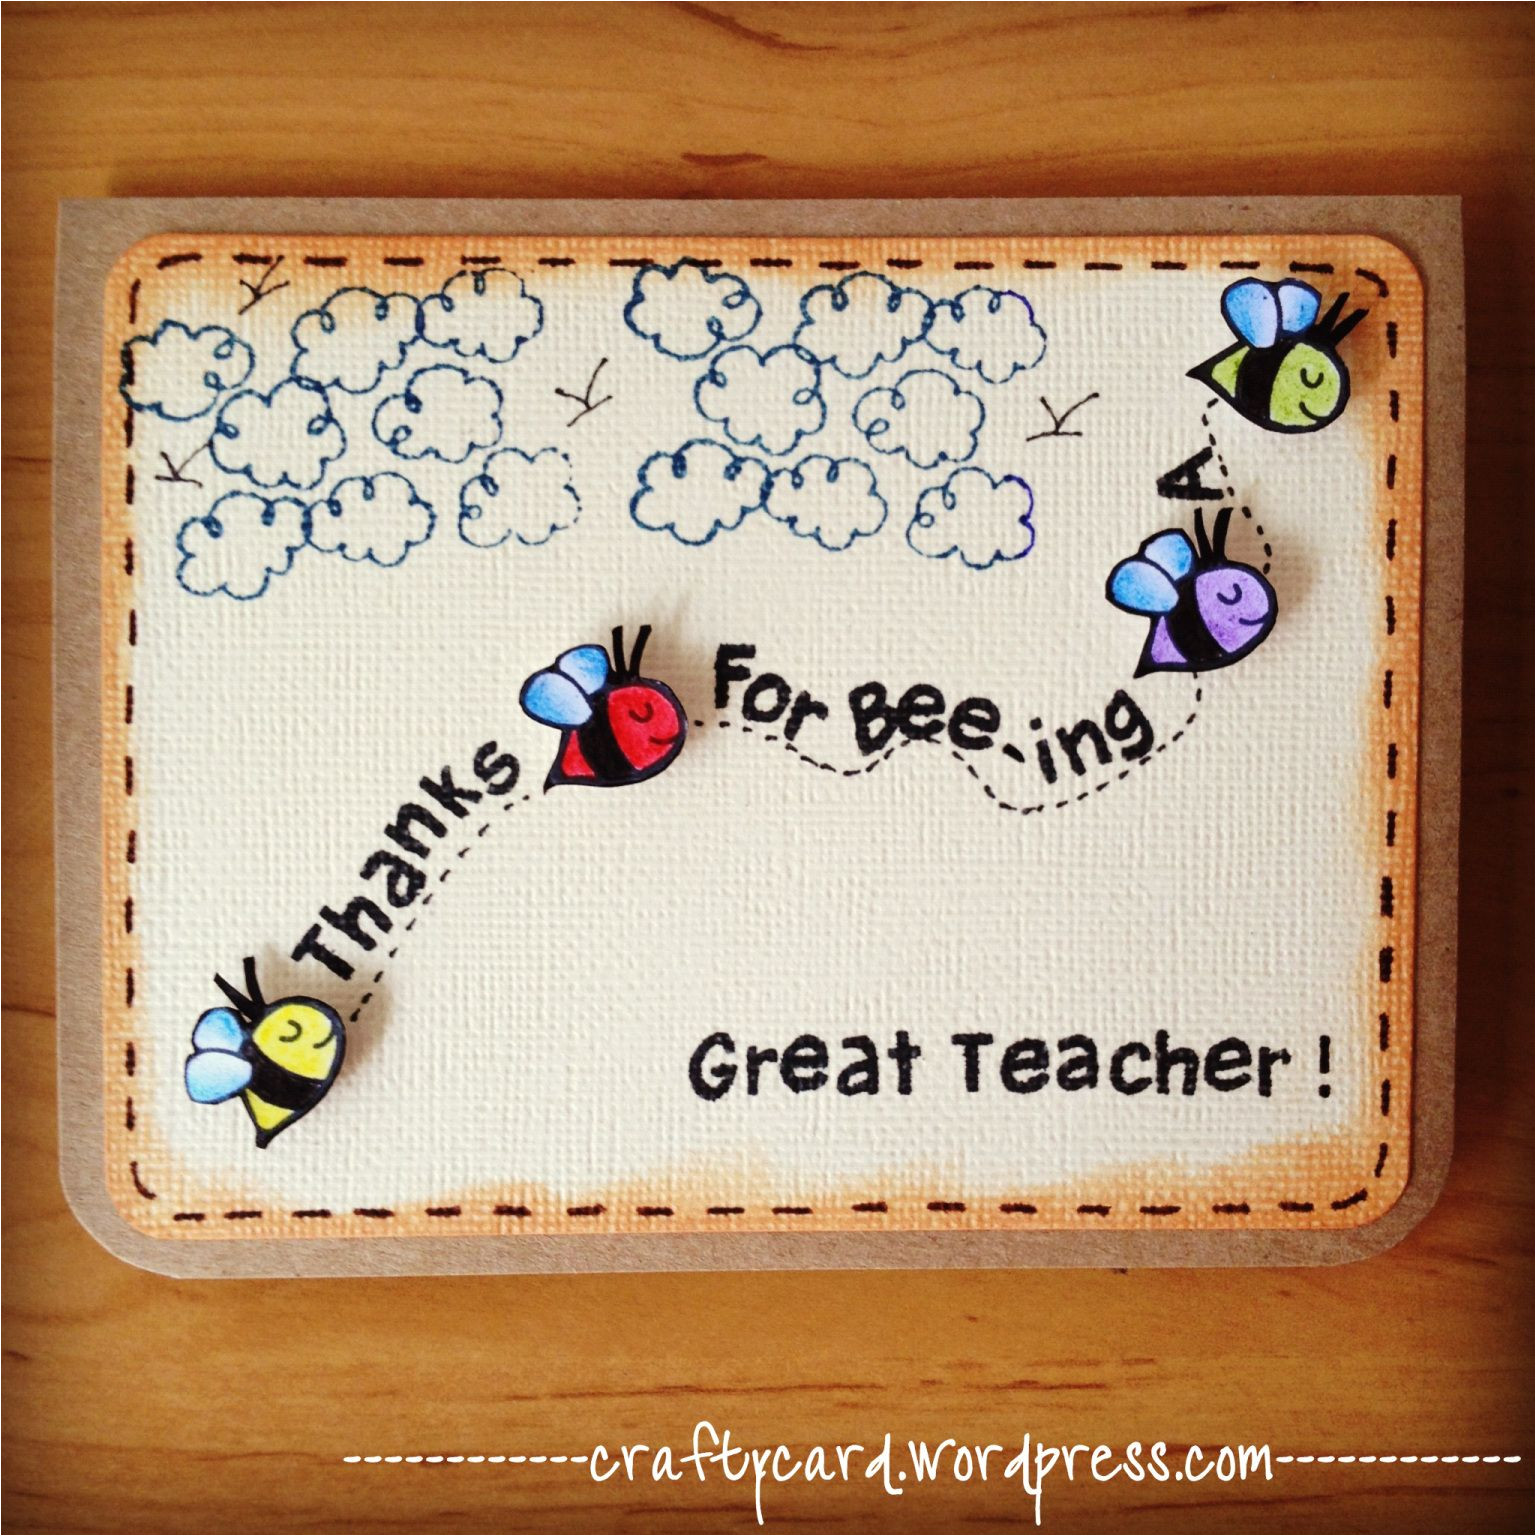 Teachers Day Card Happy Teachers Day Card M203 Thanks for Bee Ing A Great Teacher with Images